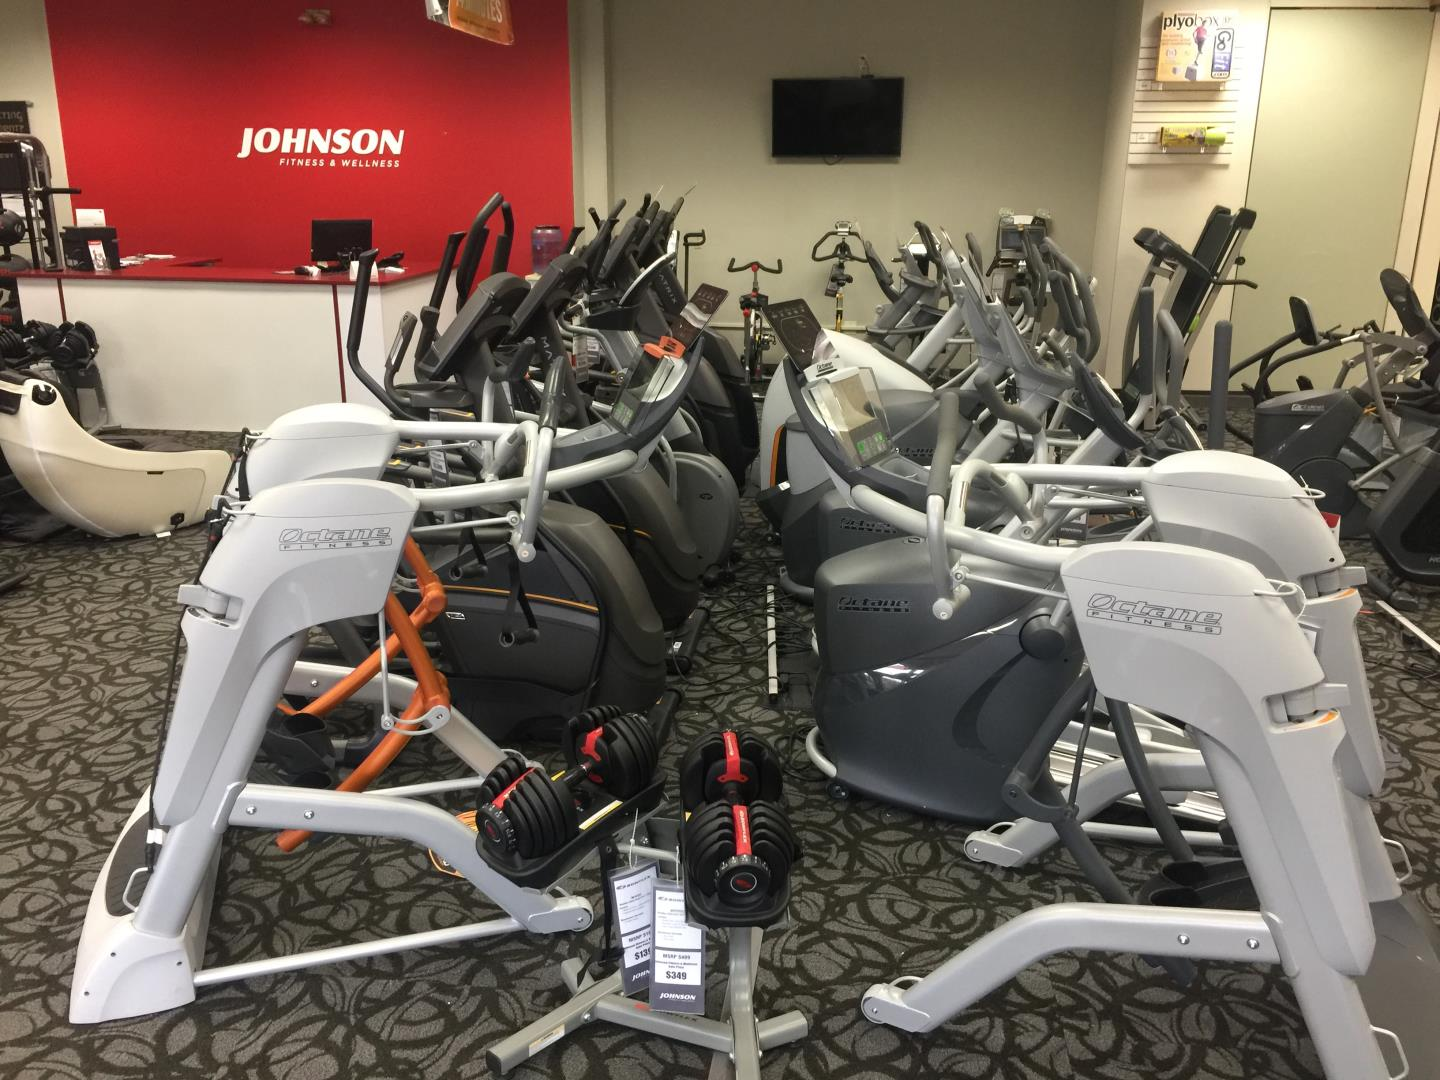 Johnson Fitness & Wellness - Rochester, MN